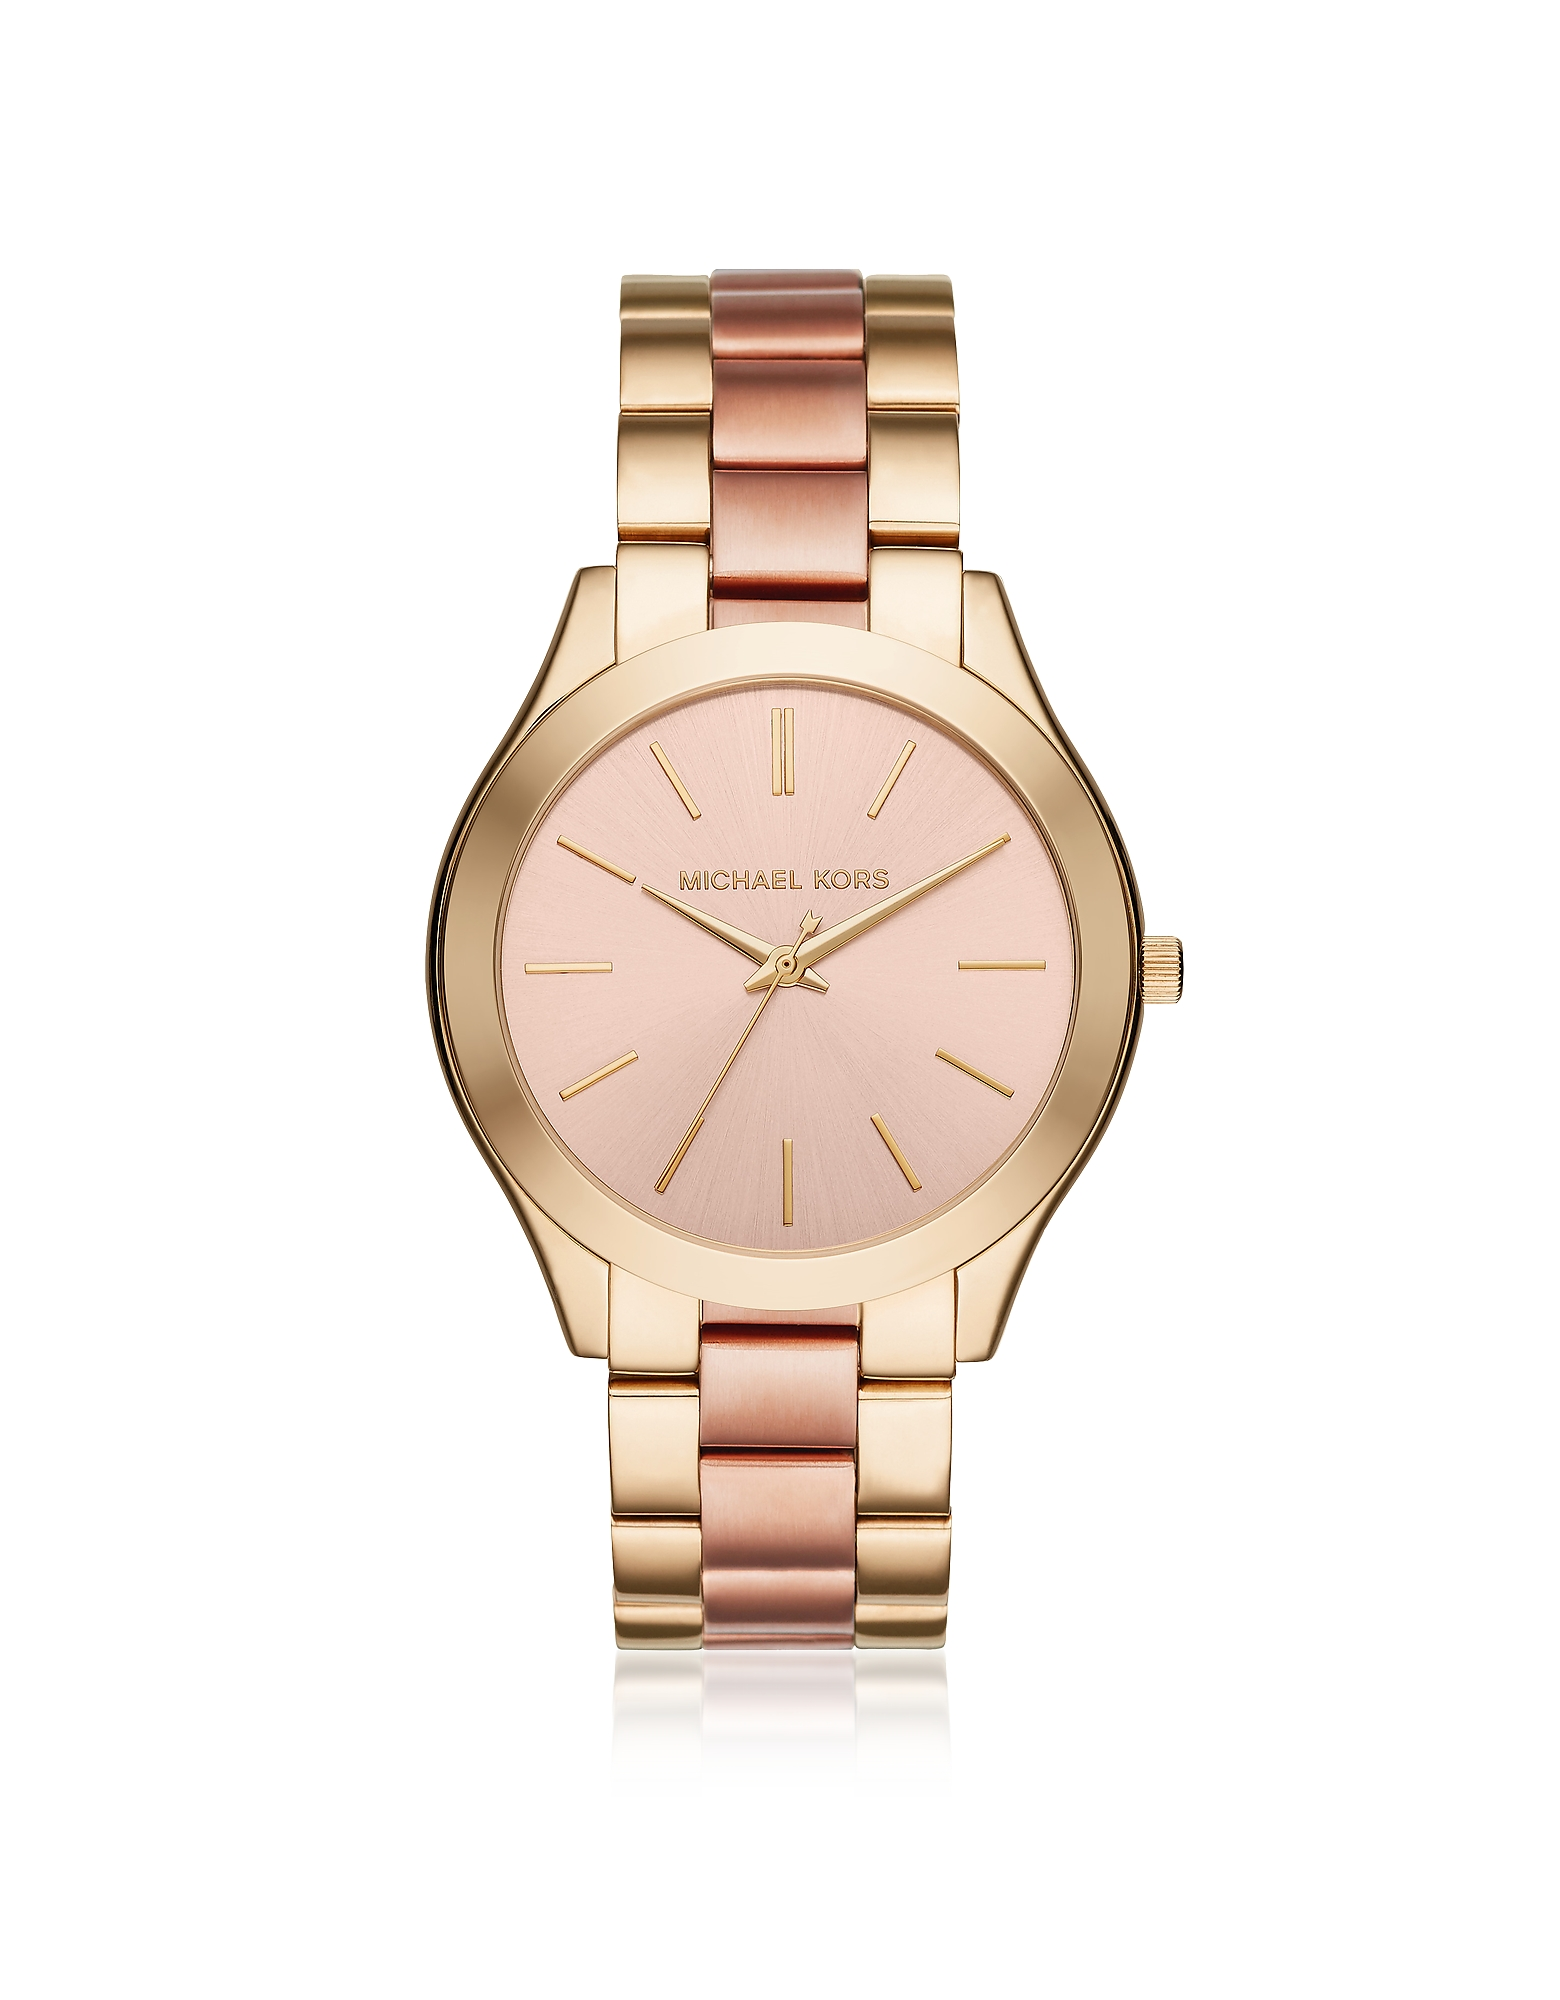 Michael Kors Women's Watches, Slim Runway Women's Watch